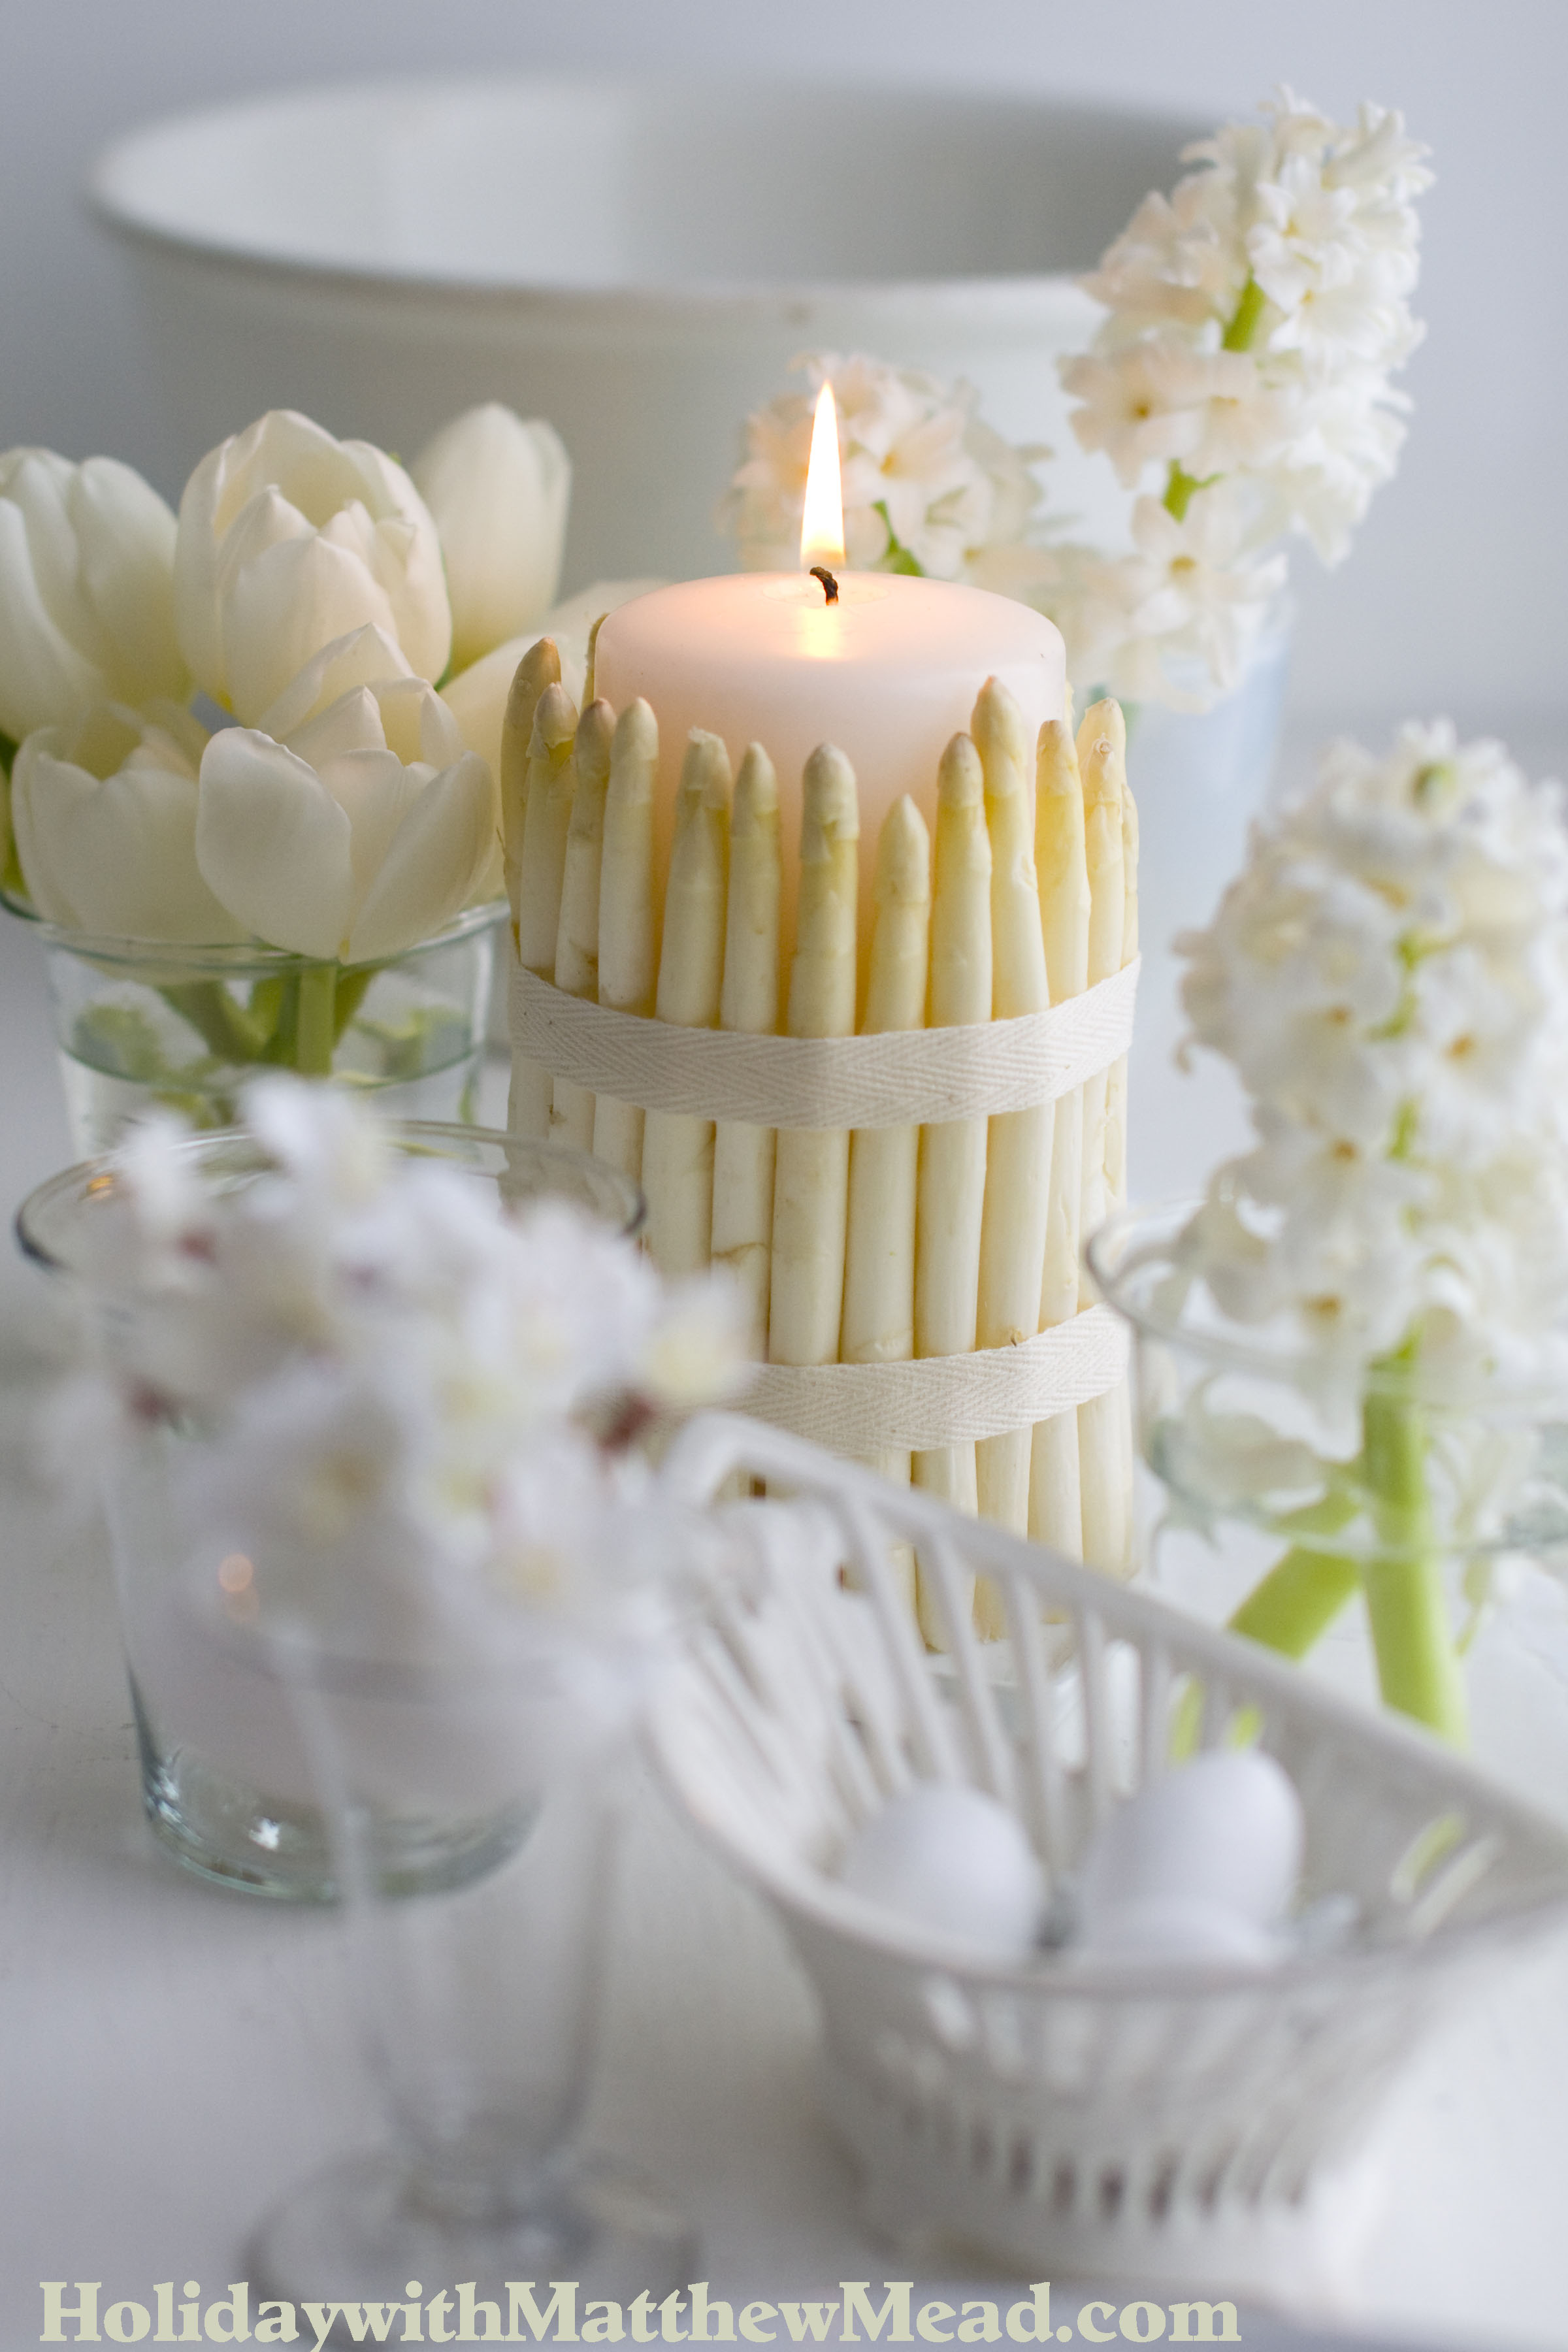 Surround a pillar candle with white asparagus and tie with a ribbon. Surround with assortment of vases with white flowers to make a beautiful dinner table. www.HolidaywithMatthewMead.com